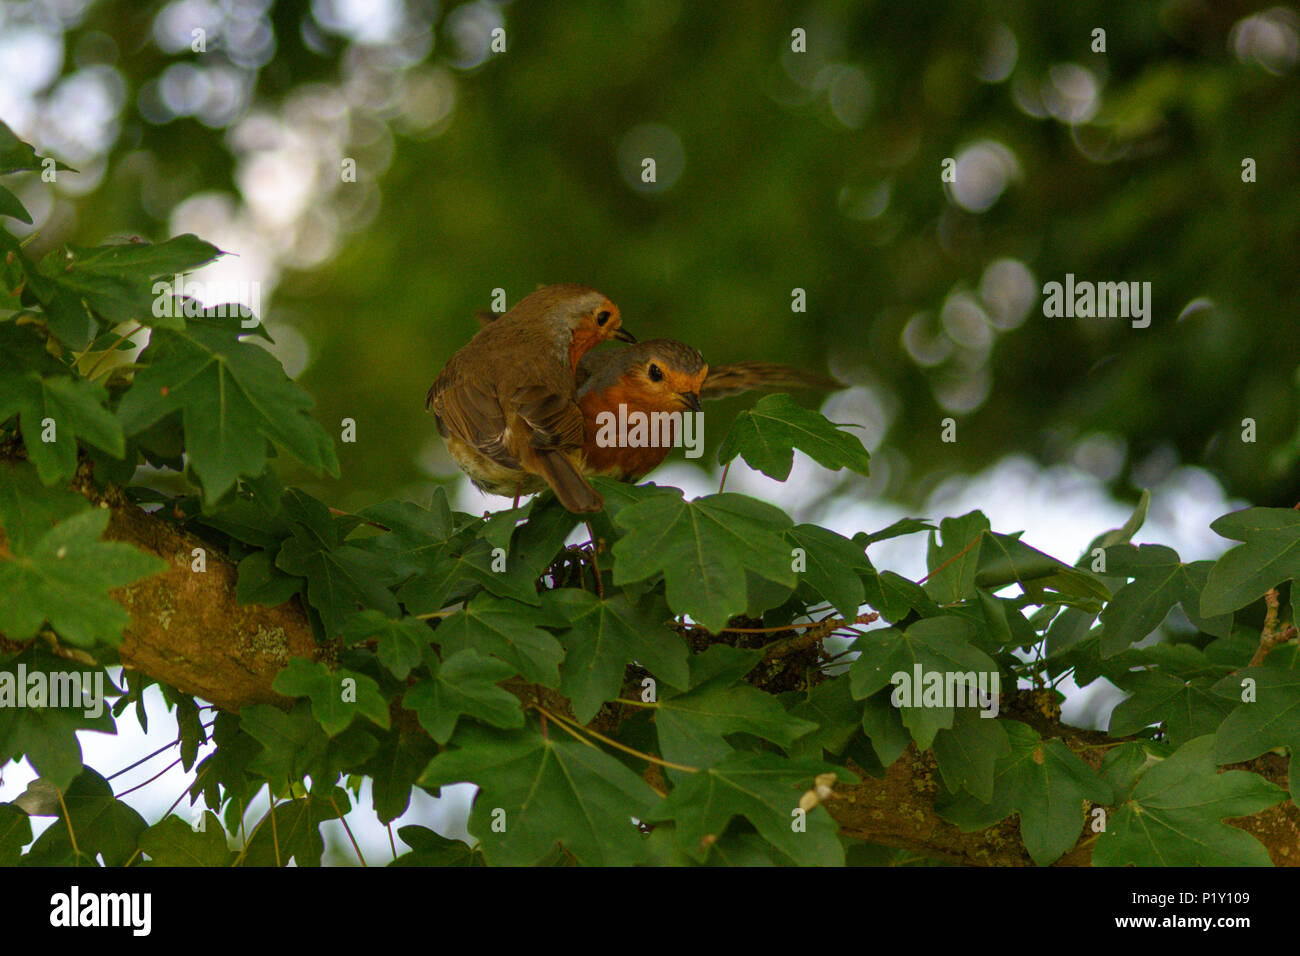 A young recently fledged robin still begging its parent for food in a tree - Stock Image